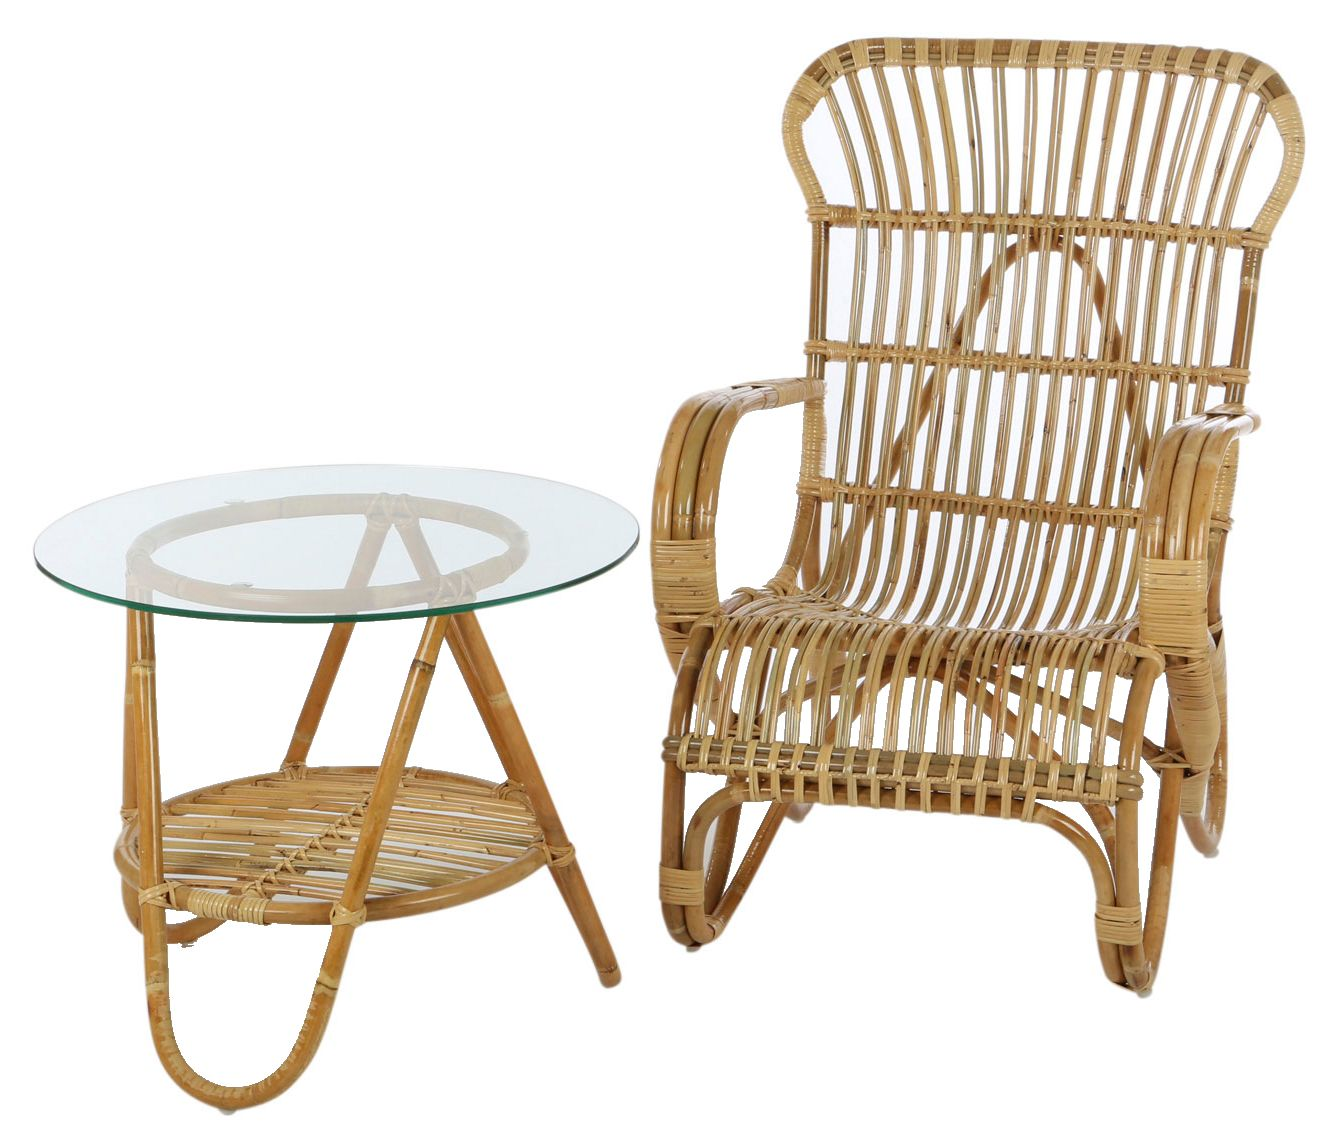 vintage rattan tisch tischgestelle terrasse. Black Bedroom Furniture Sets. Home Design Ideas